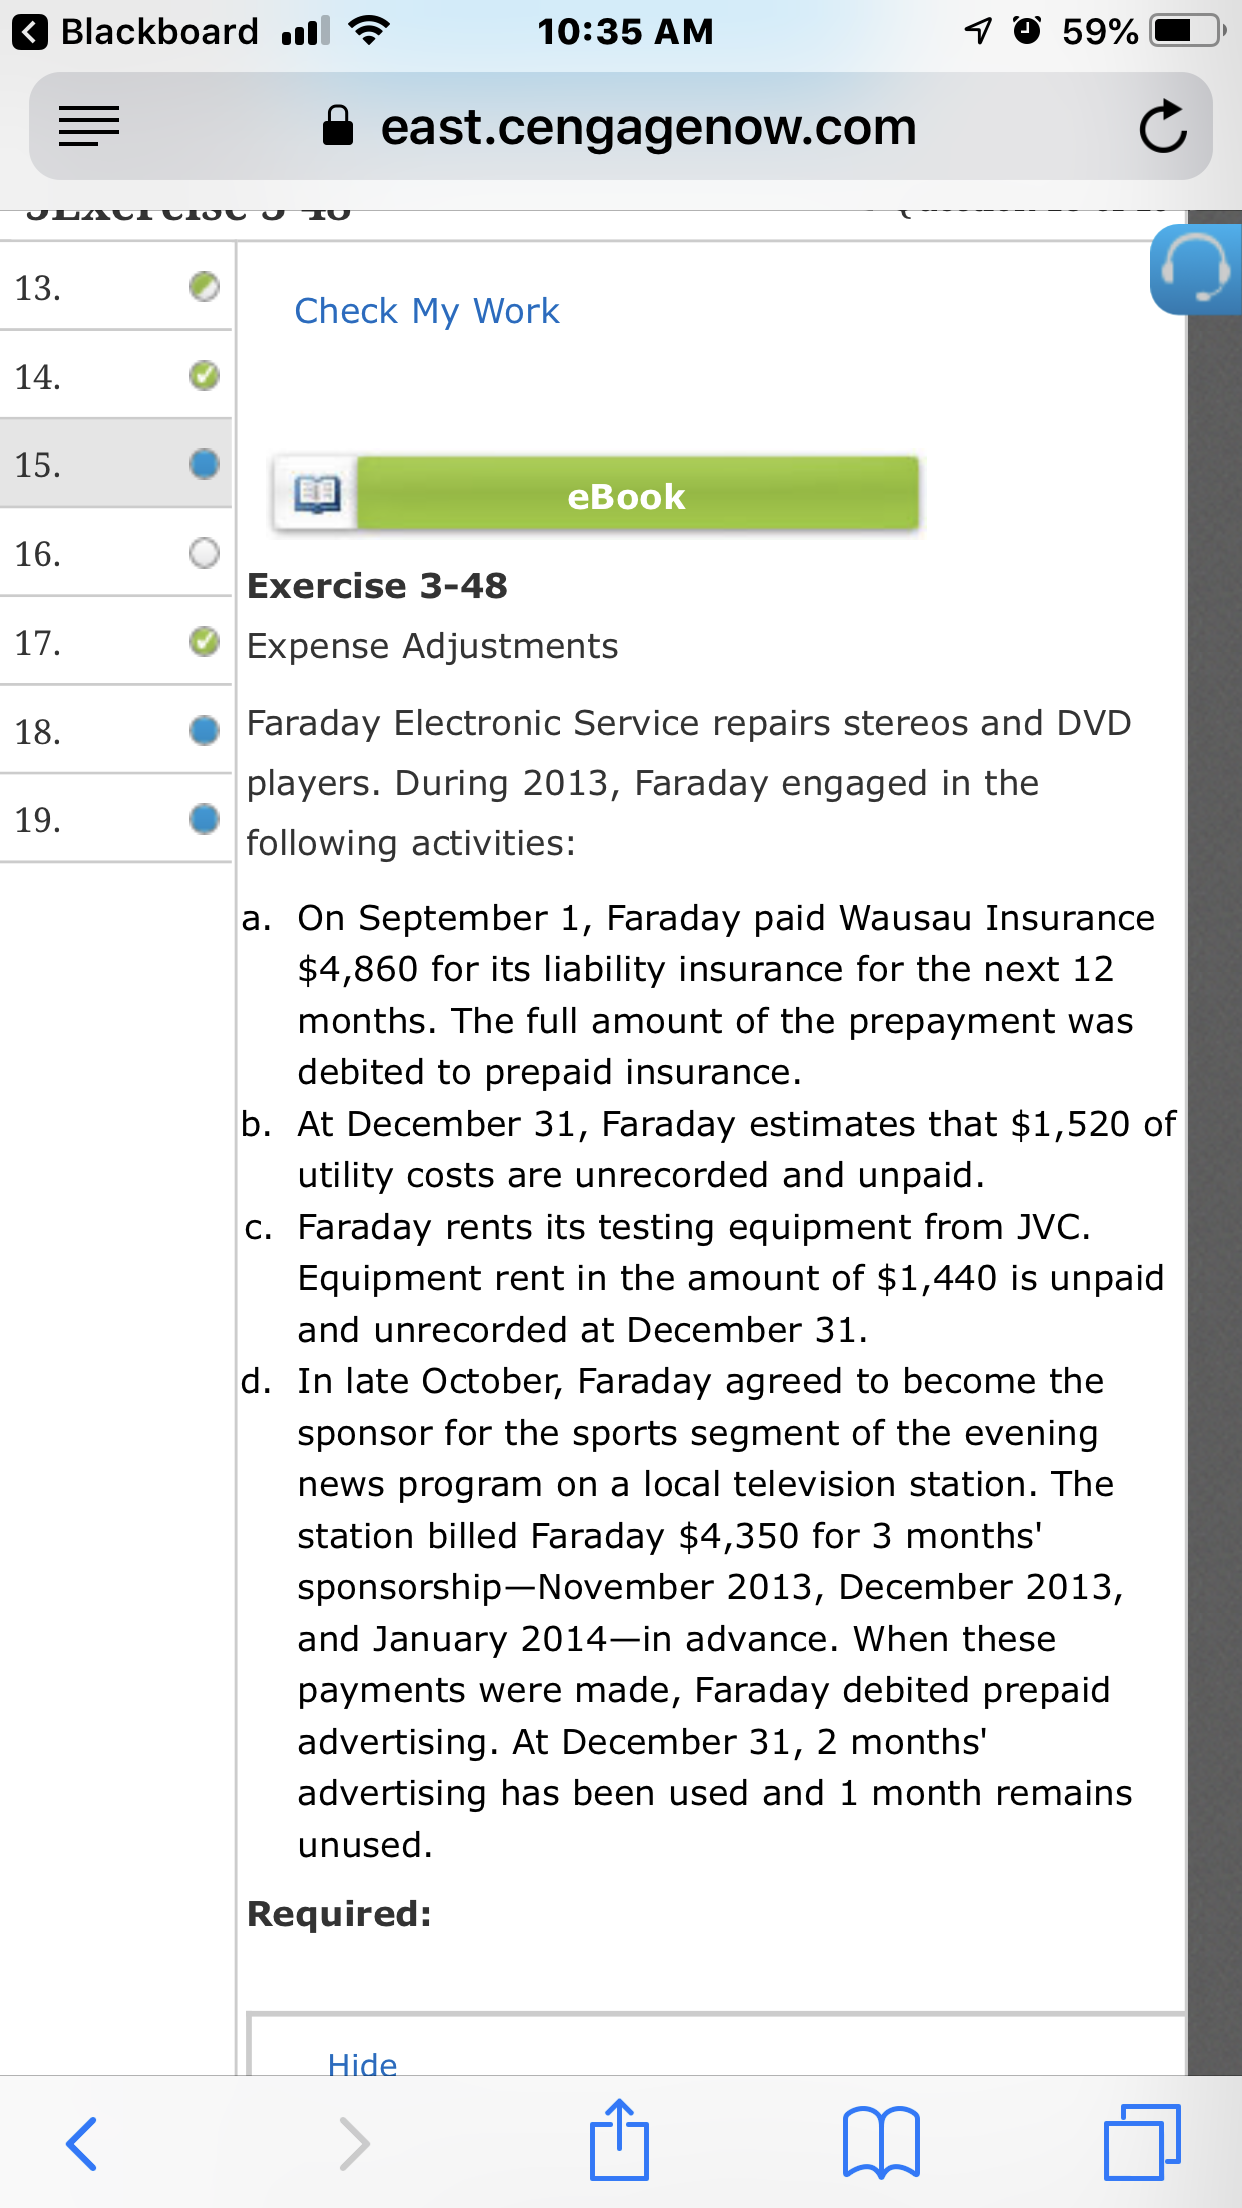 7 O 59% Blackboard 10:35 AM east.cengagenow.com JLACICIO U J IU 13. Check My Work 14. 15. еВook 16. Exercise 3-48 17. Expense Adjustments Faraday Electronic Service repairs stereos and DVD 18. players. During 2013, Faraday engaged in the 19. following activities: a. On September 1, Faraday paid Wausau Insurance $4,860 for its liability insurance for the next 12 months. The full amount of the prepayment was debited to prepaid insurance. b. At December 31, Faraday estimates that $1,520 of utility costs are unrecorded and unpaid. c. Faraday rents its testing equipment from JVC Equipment rent in the amount of $1,440 is unpaid and unrecorded at December 31. d. In late October, Faraday agreed to become the sponsor for the sports segment of the evening news program on a local television station. The station billed Faraday $4,350 for 3 months' sponsorship-November 2013, December 2013, and January 2014-in advance. When these payments were made, Faraday debited prepaid advertising. At December 31, 2 months' advertising has been used and 1 month remains unused Required: Hide